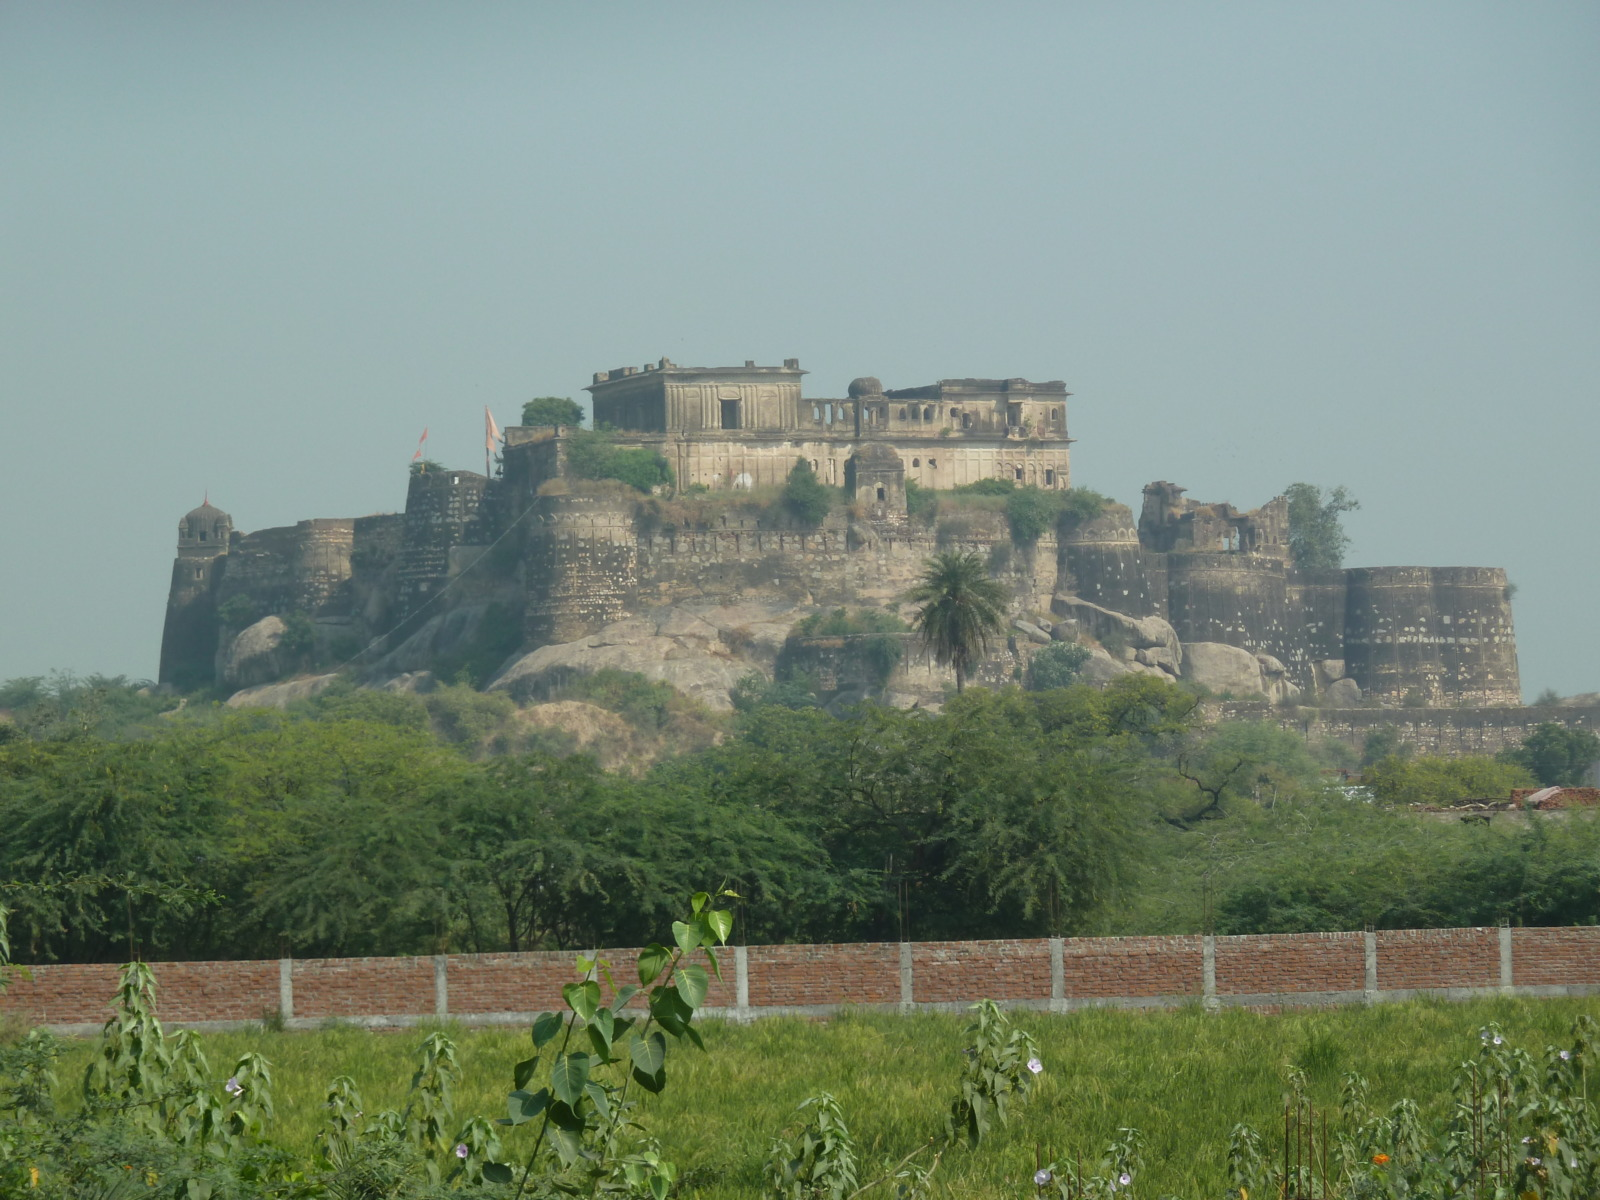 Fort at Amargarh, Uttar Pradesh